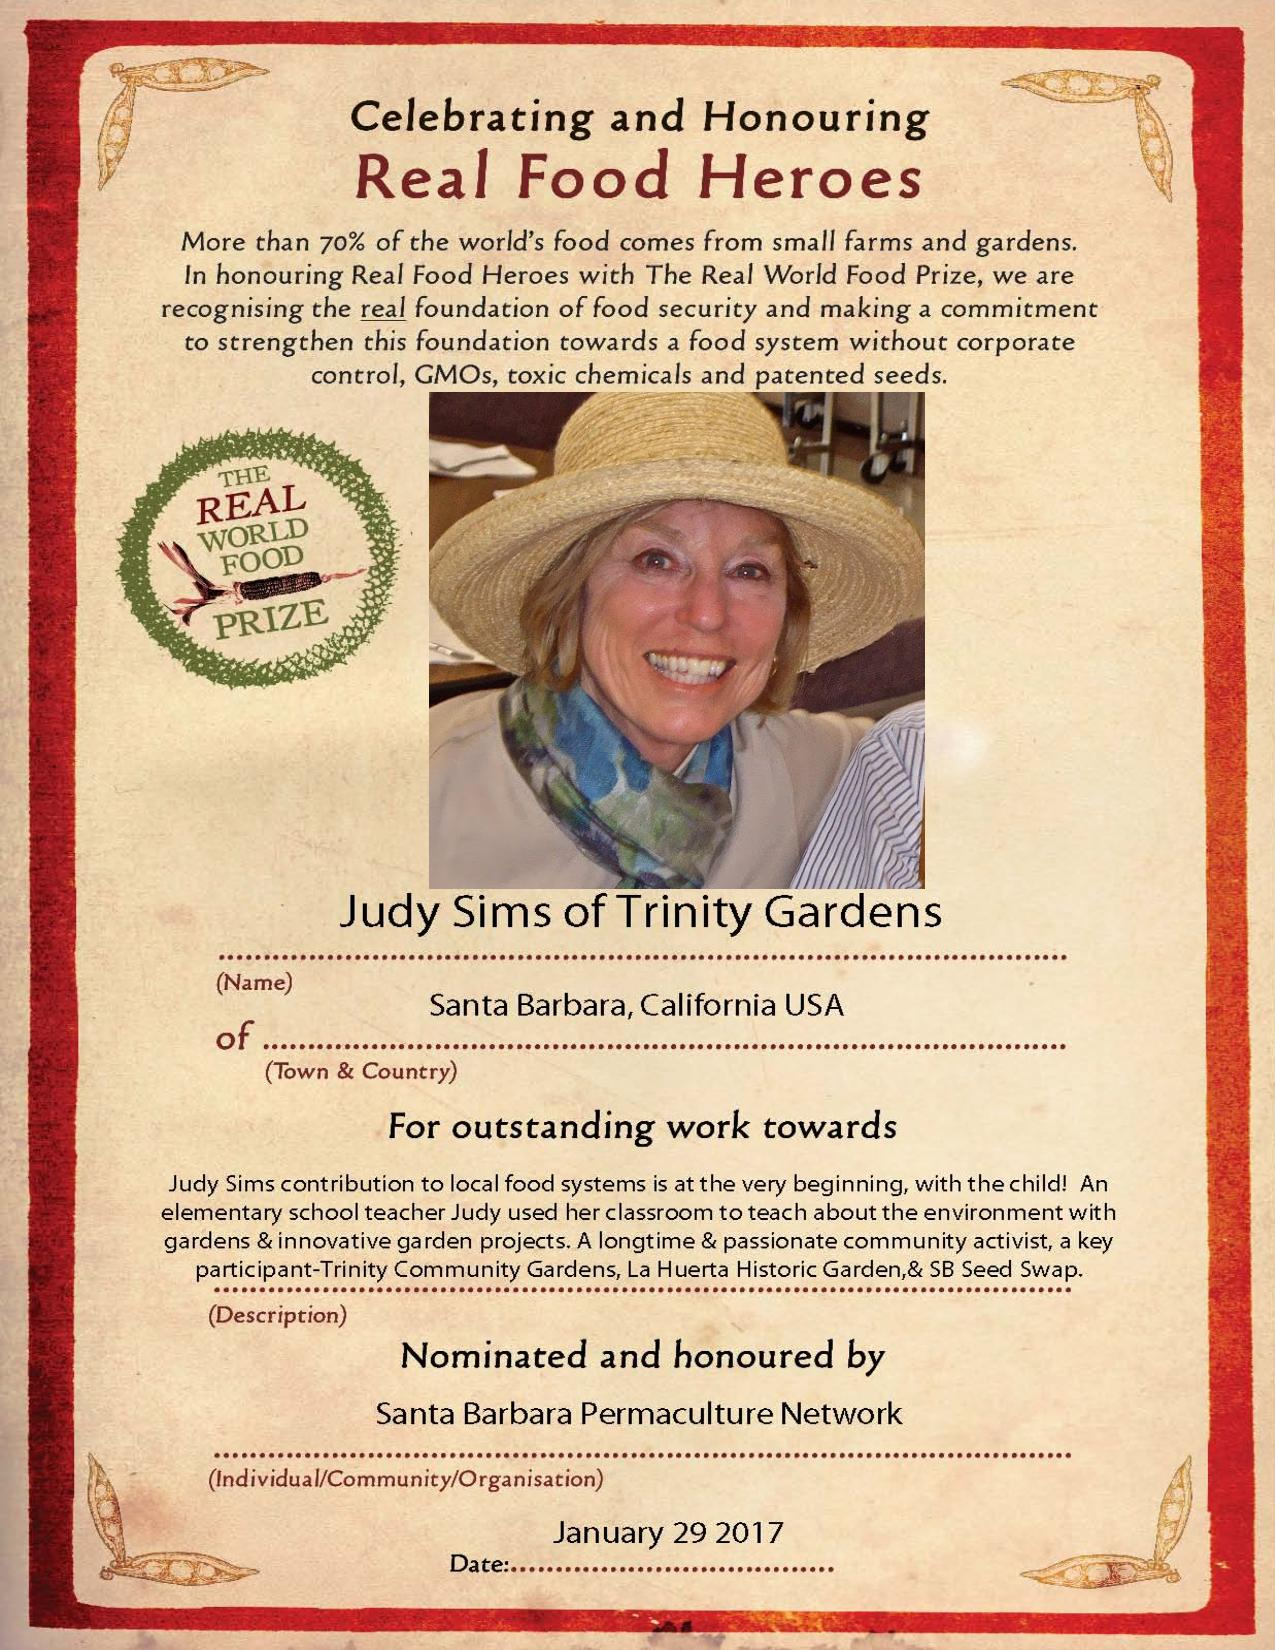 Santa Barbara Permaculture Network - local to global, an educational